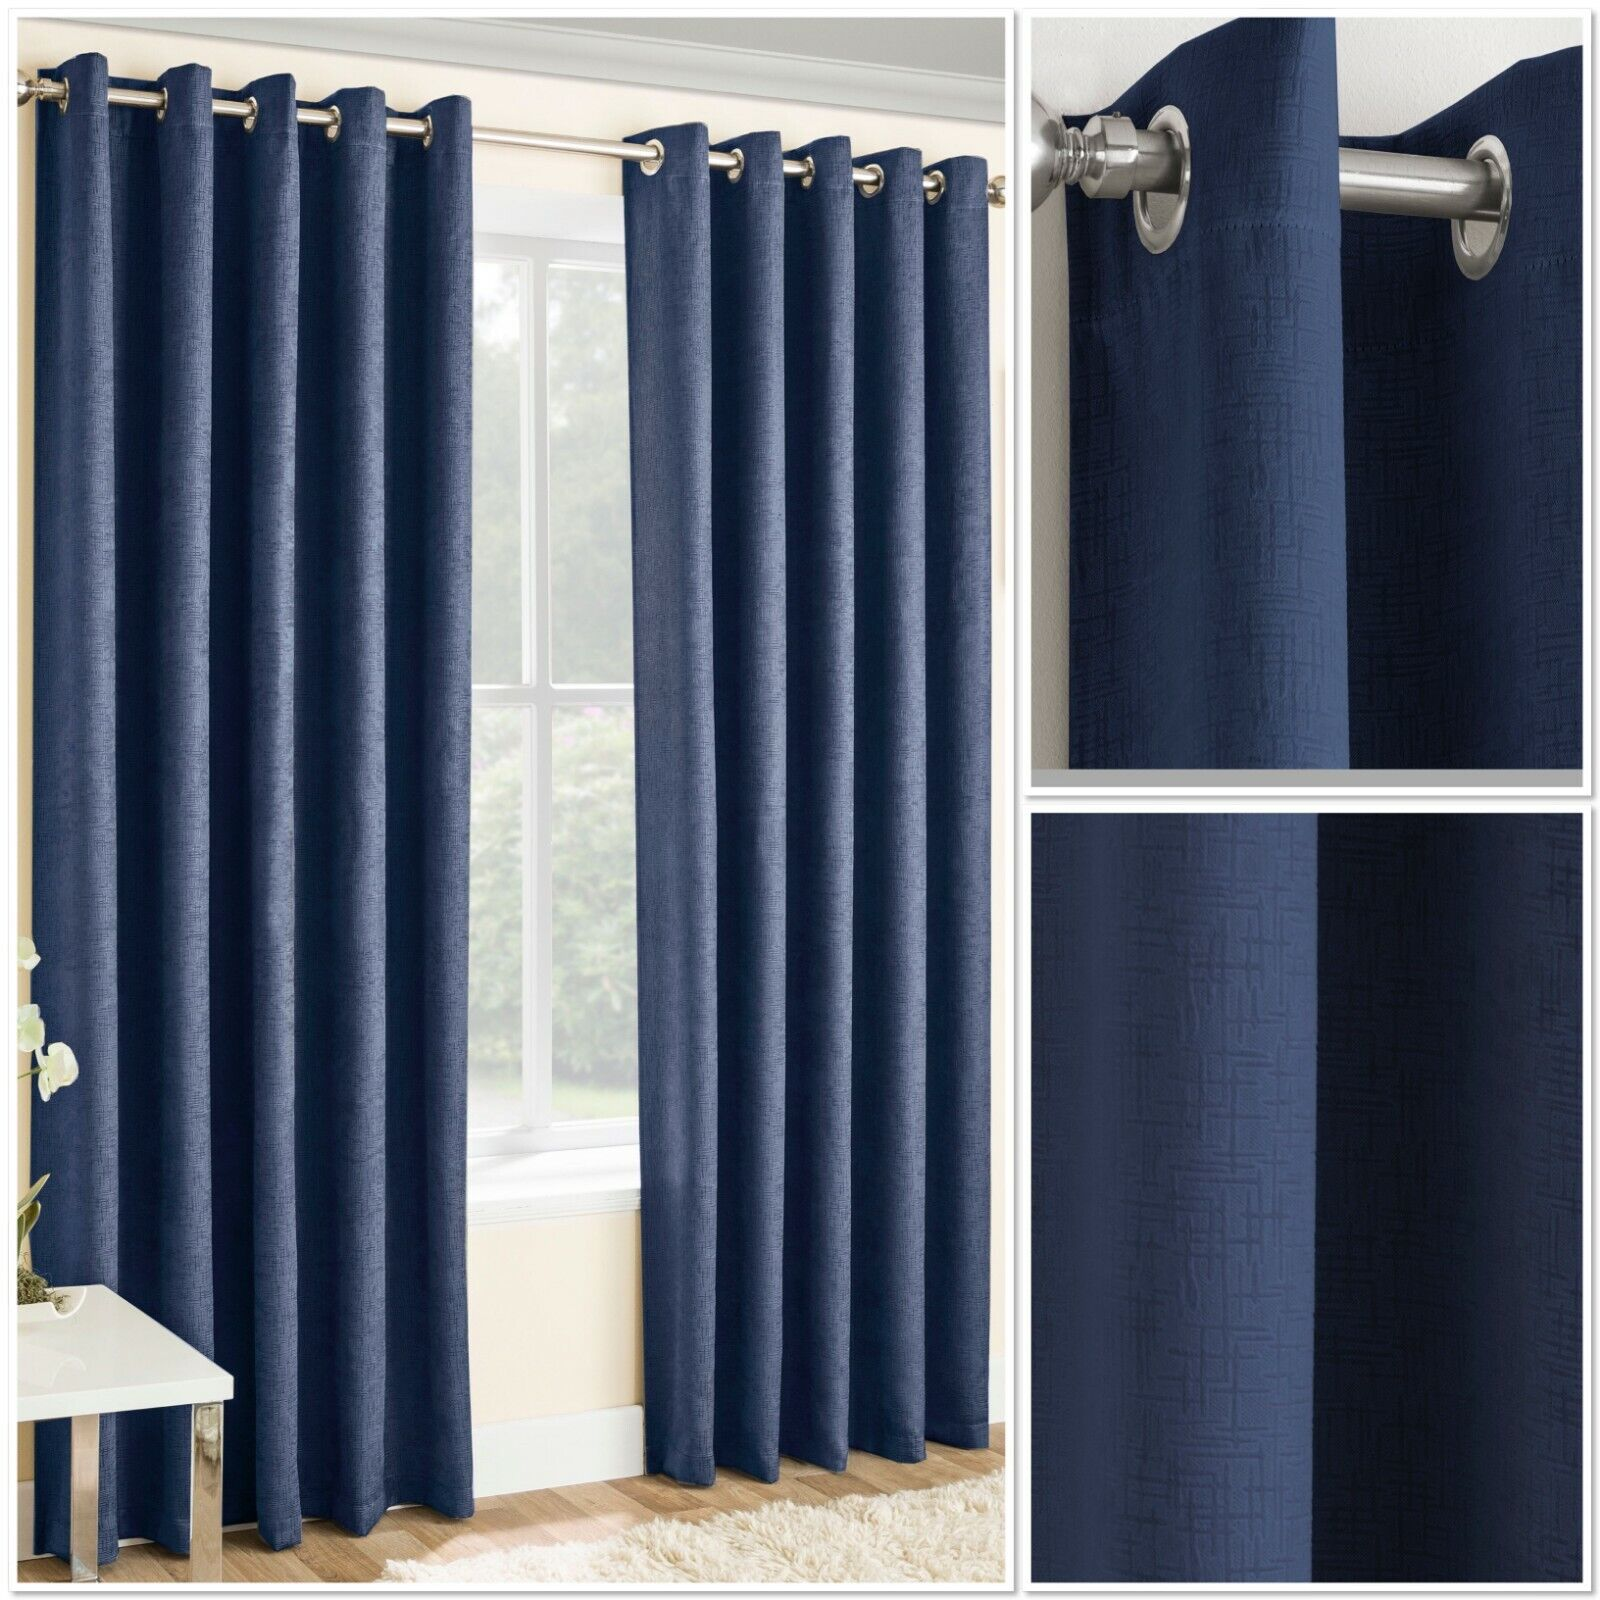 curtains - Vogue Woven Textured Blockout/Thermal Interwoven Lined Eyelet Curtains Navy